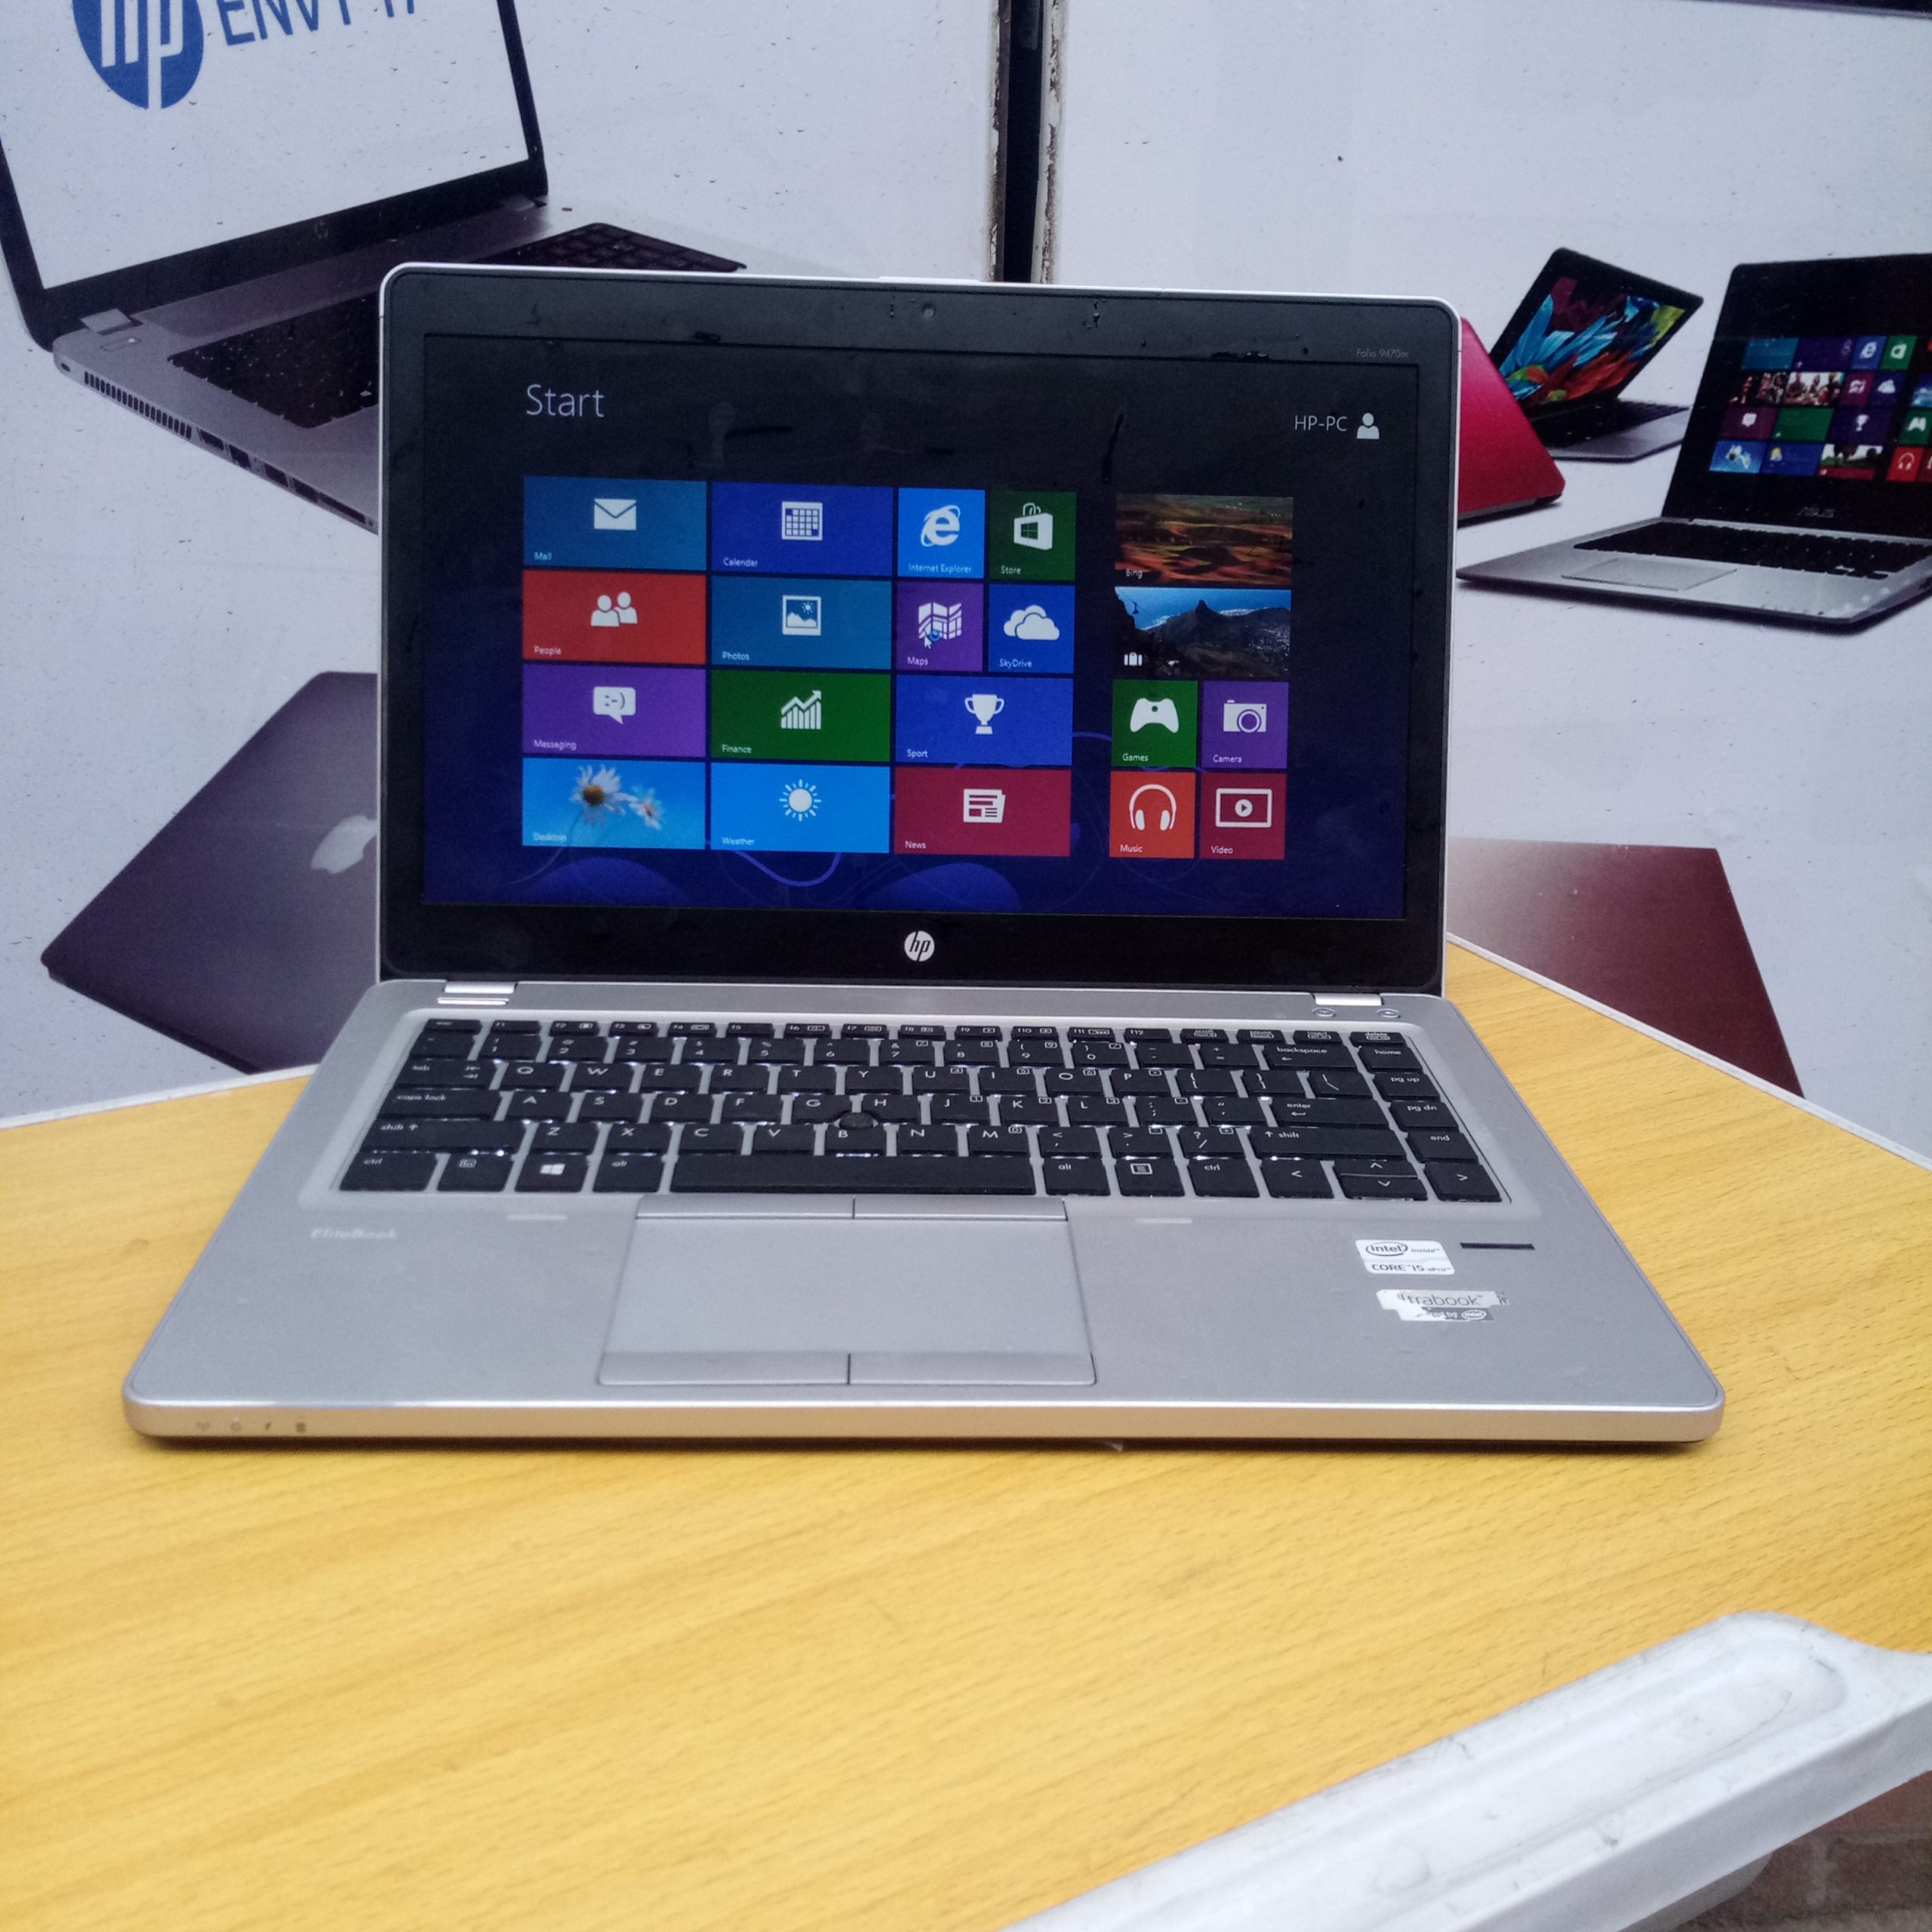 UK Used: HP Elitebook Folio Core i5, 500gb hdd 4gb Ram, Keyboard Light and Fingerprint